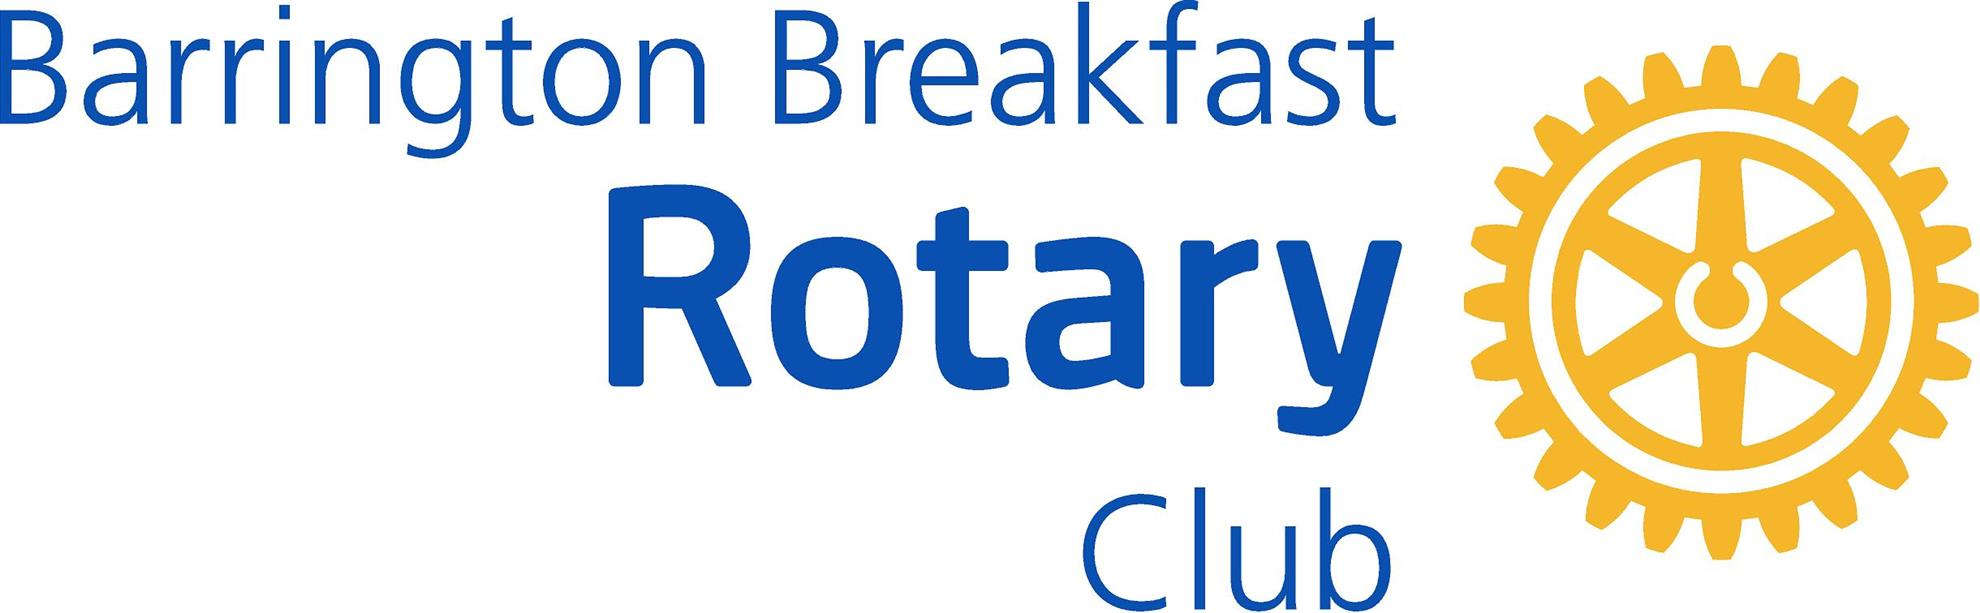 Barrington Breakfast logo